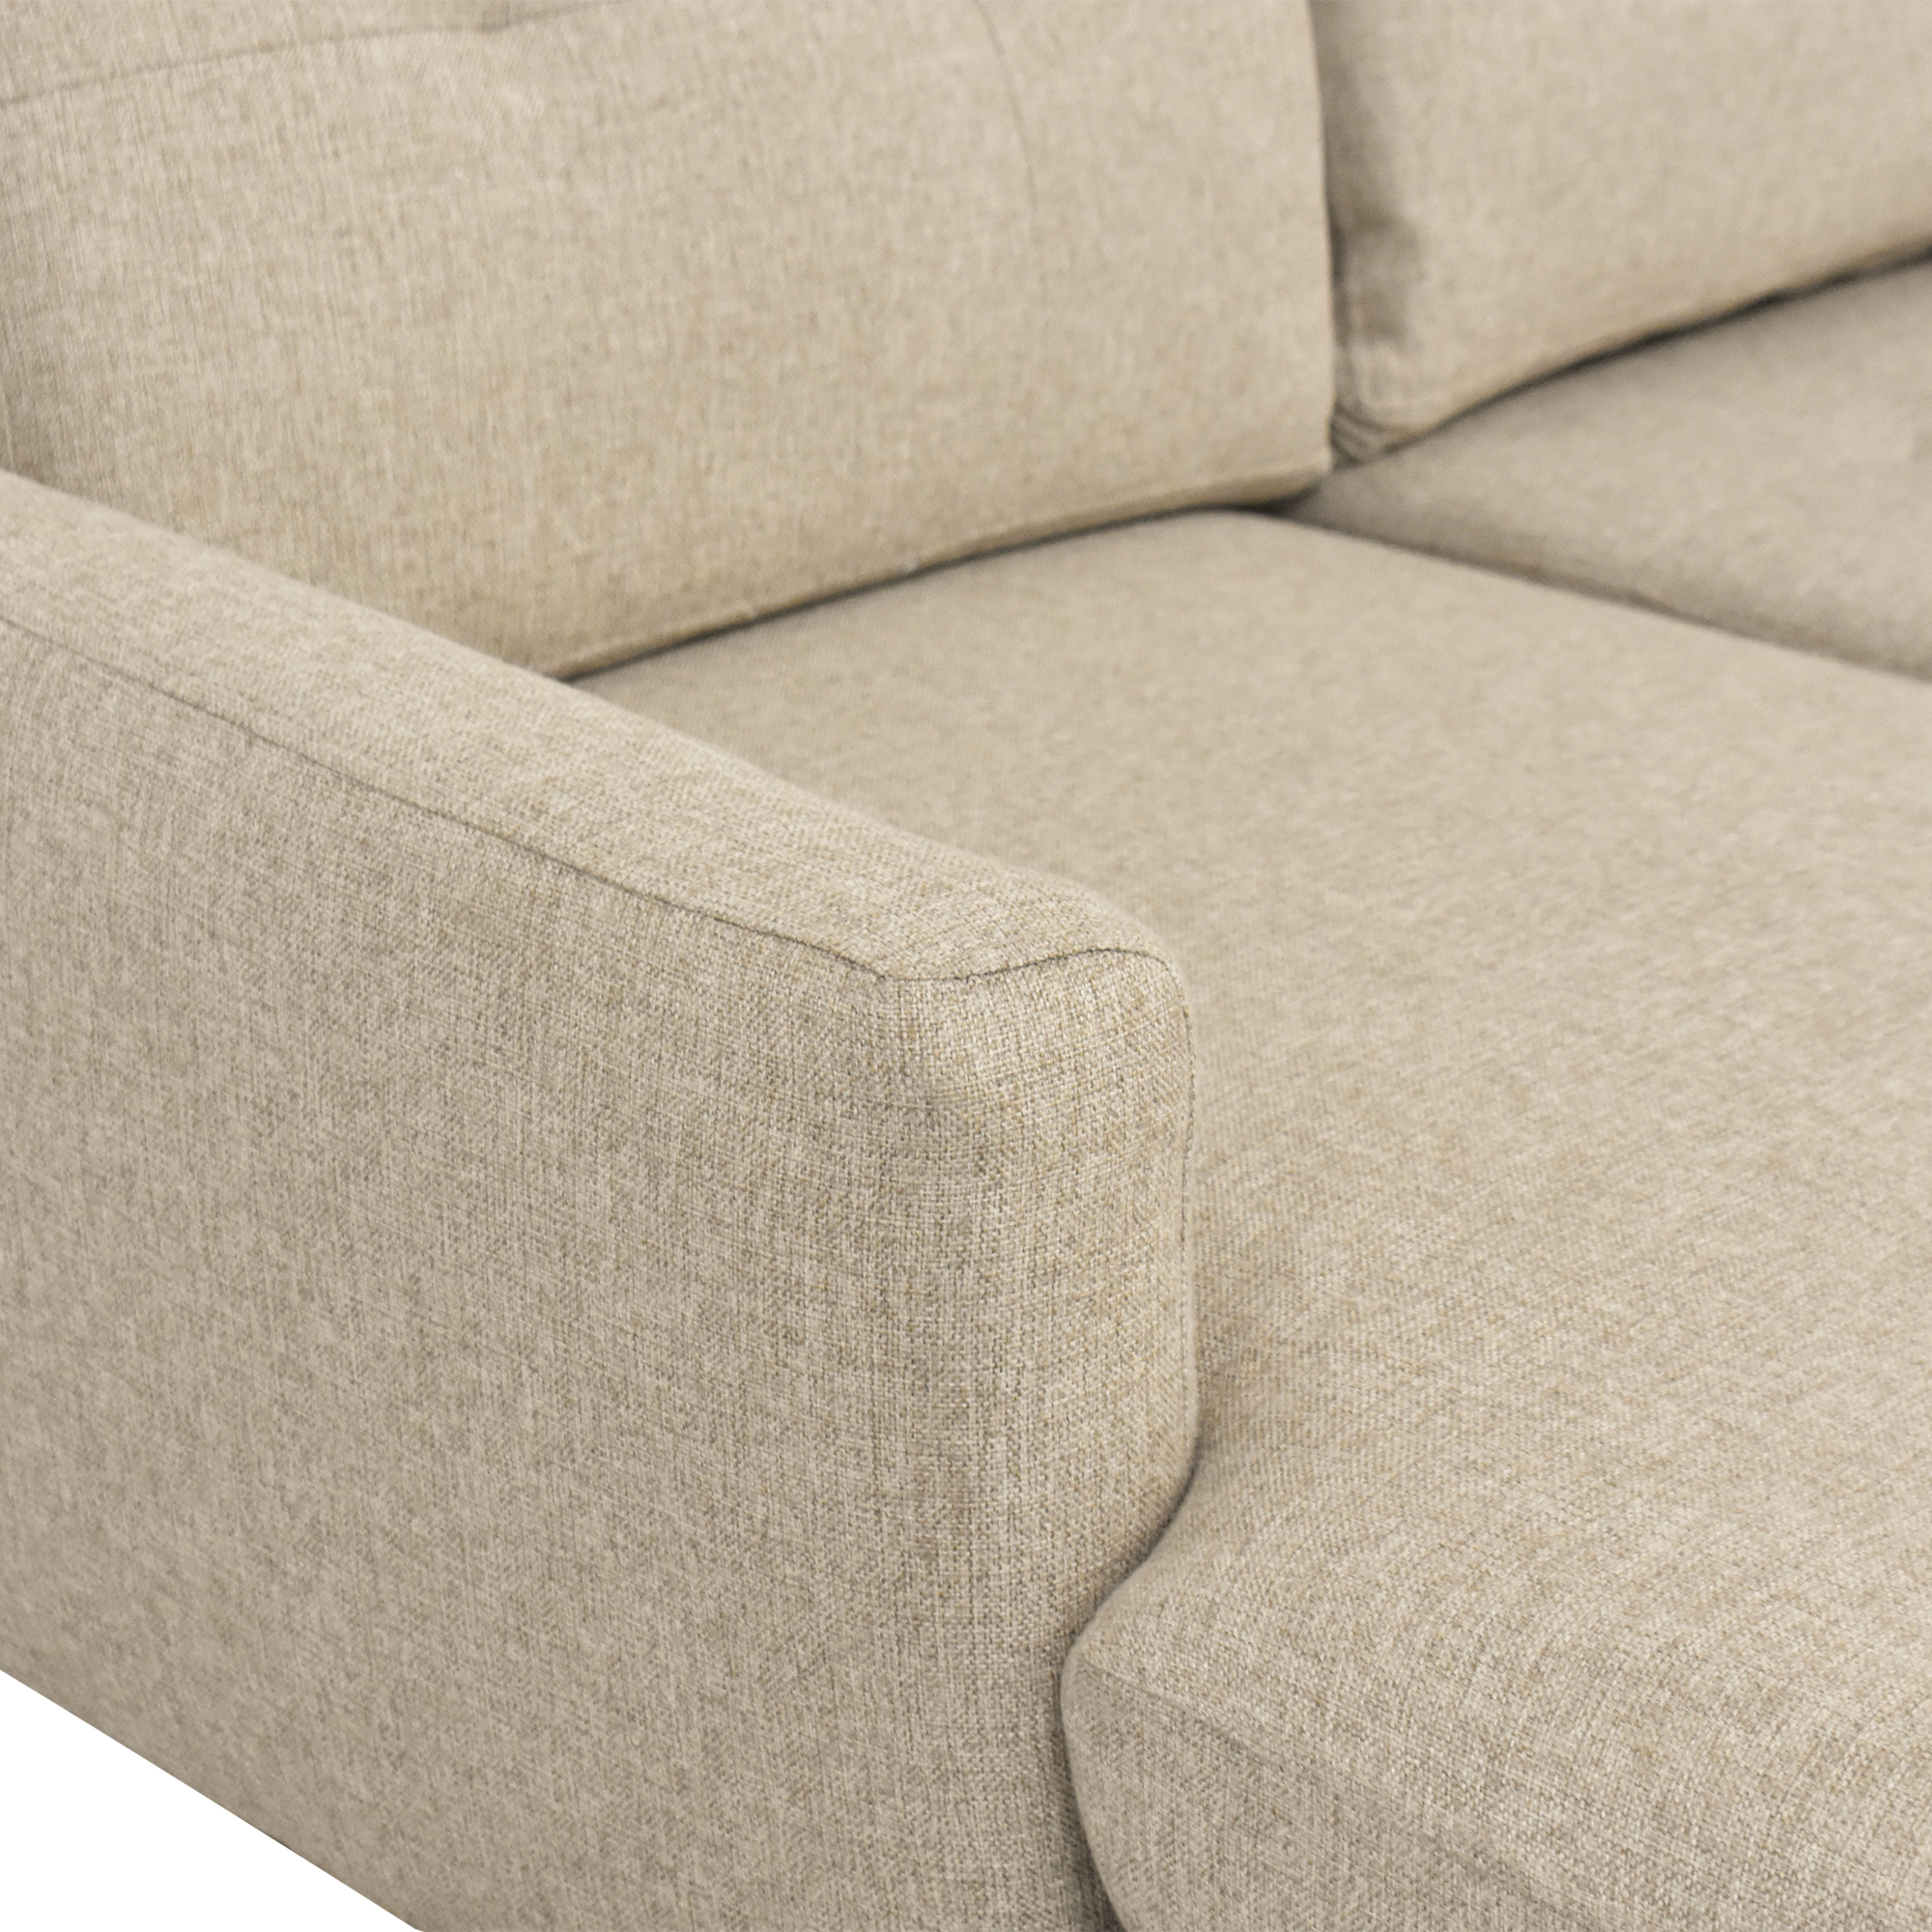 Burrow Burrown Slope Nomad Loveseat with Chaise for sale